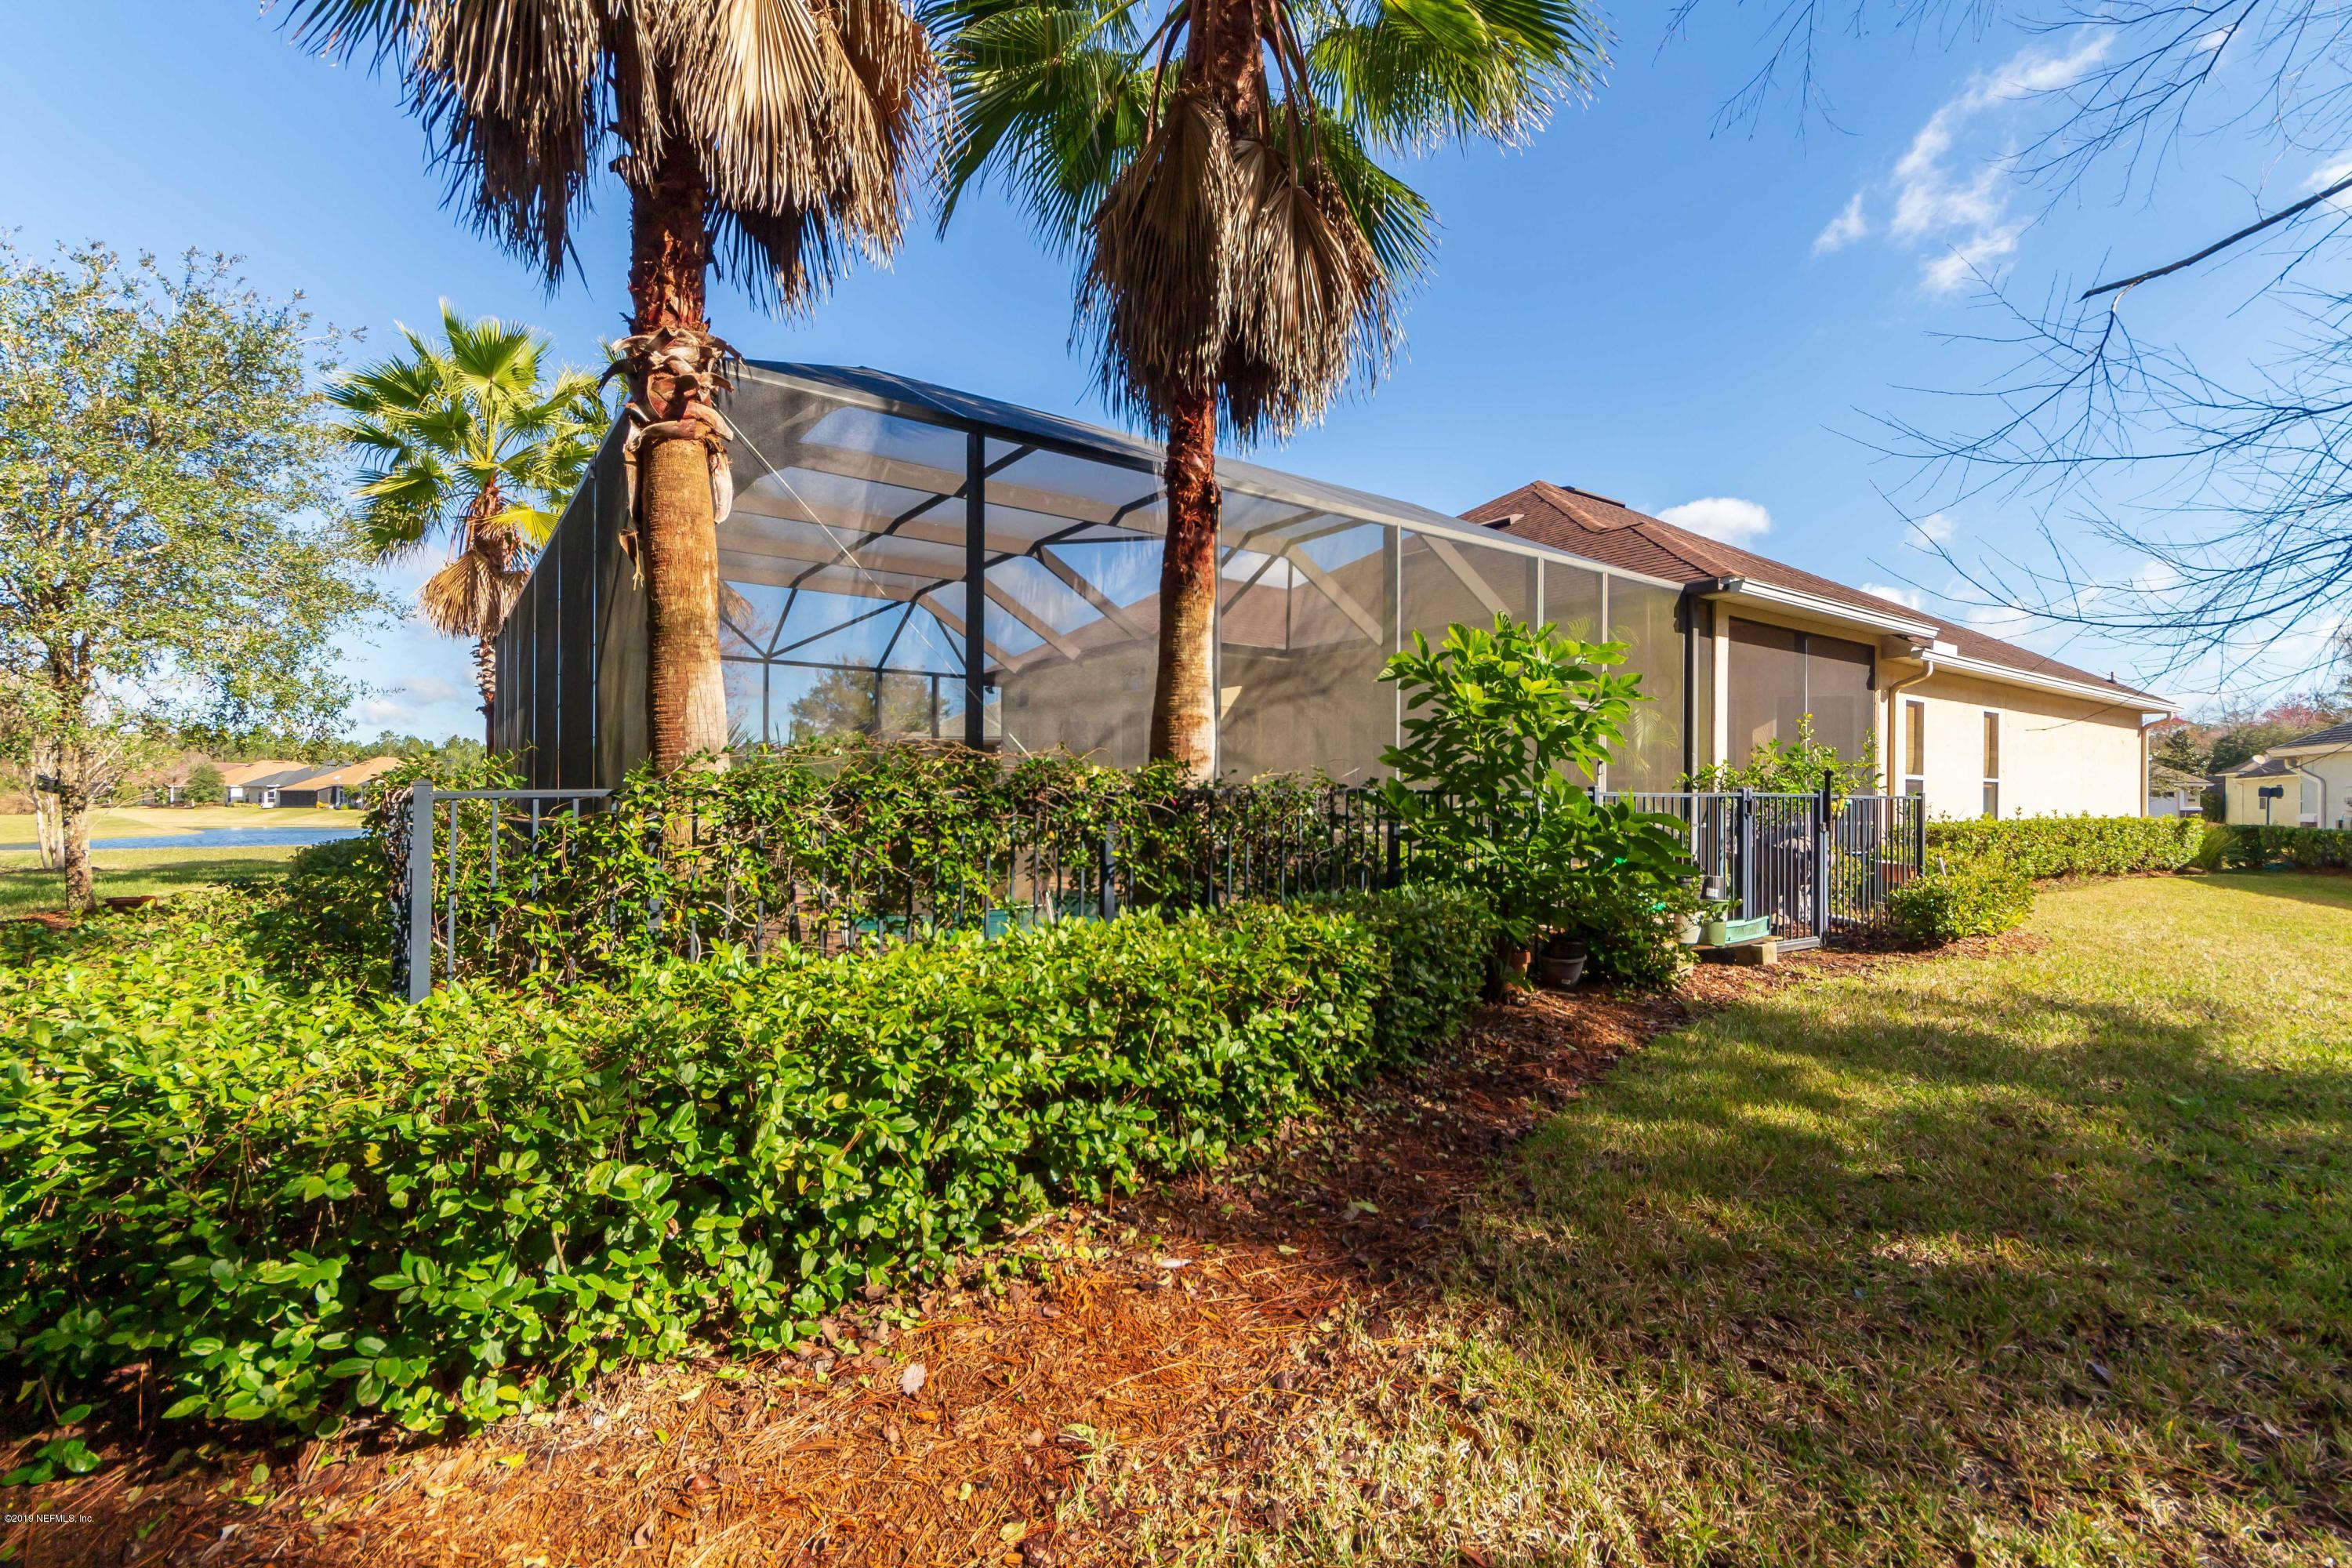 533 OLYMPIC, ST AUGUSTINE, FLORIDA 32092, 3 Bedrooms Bedrooms, ,2 BathroomsBathrooms,Residential - single family,For sale,OLYMPIC,976853